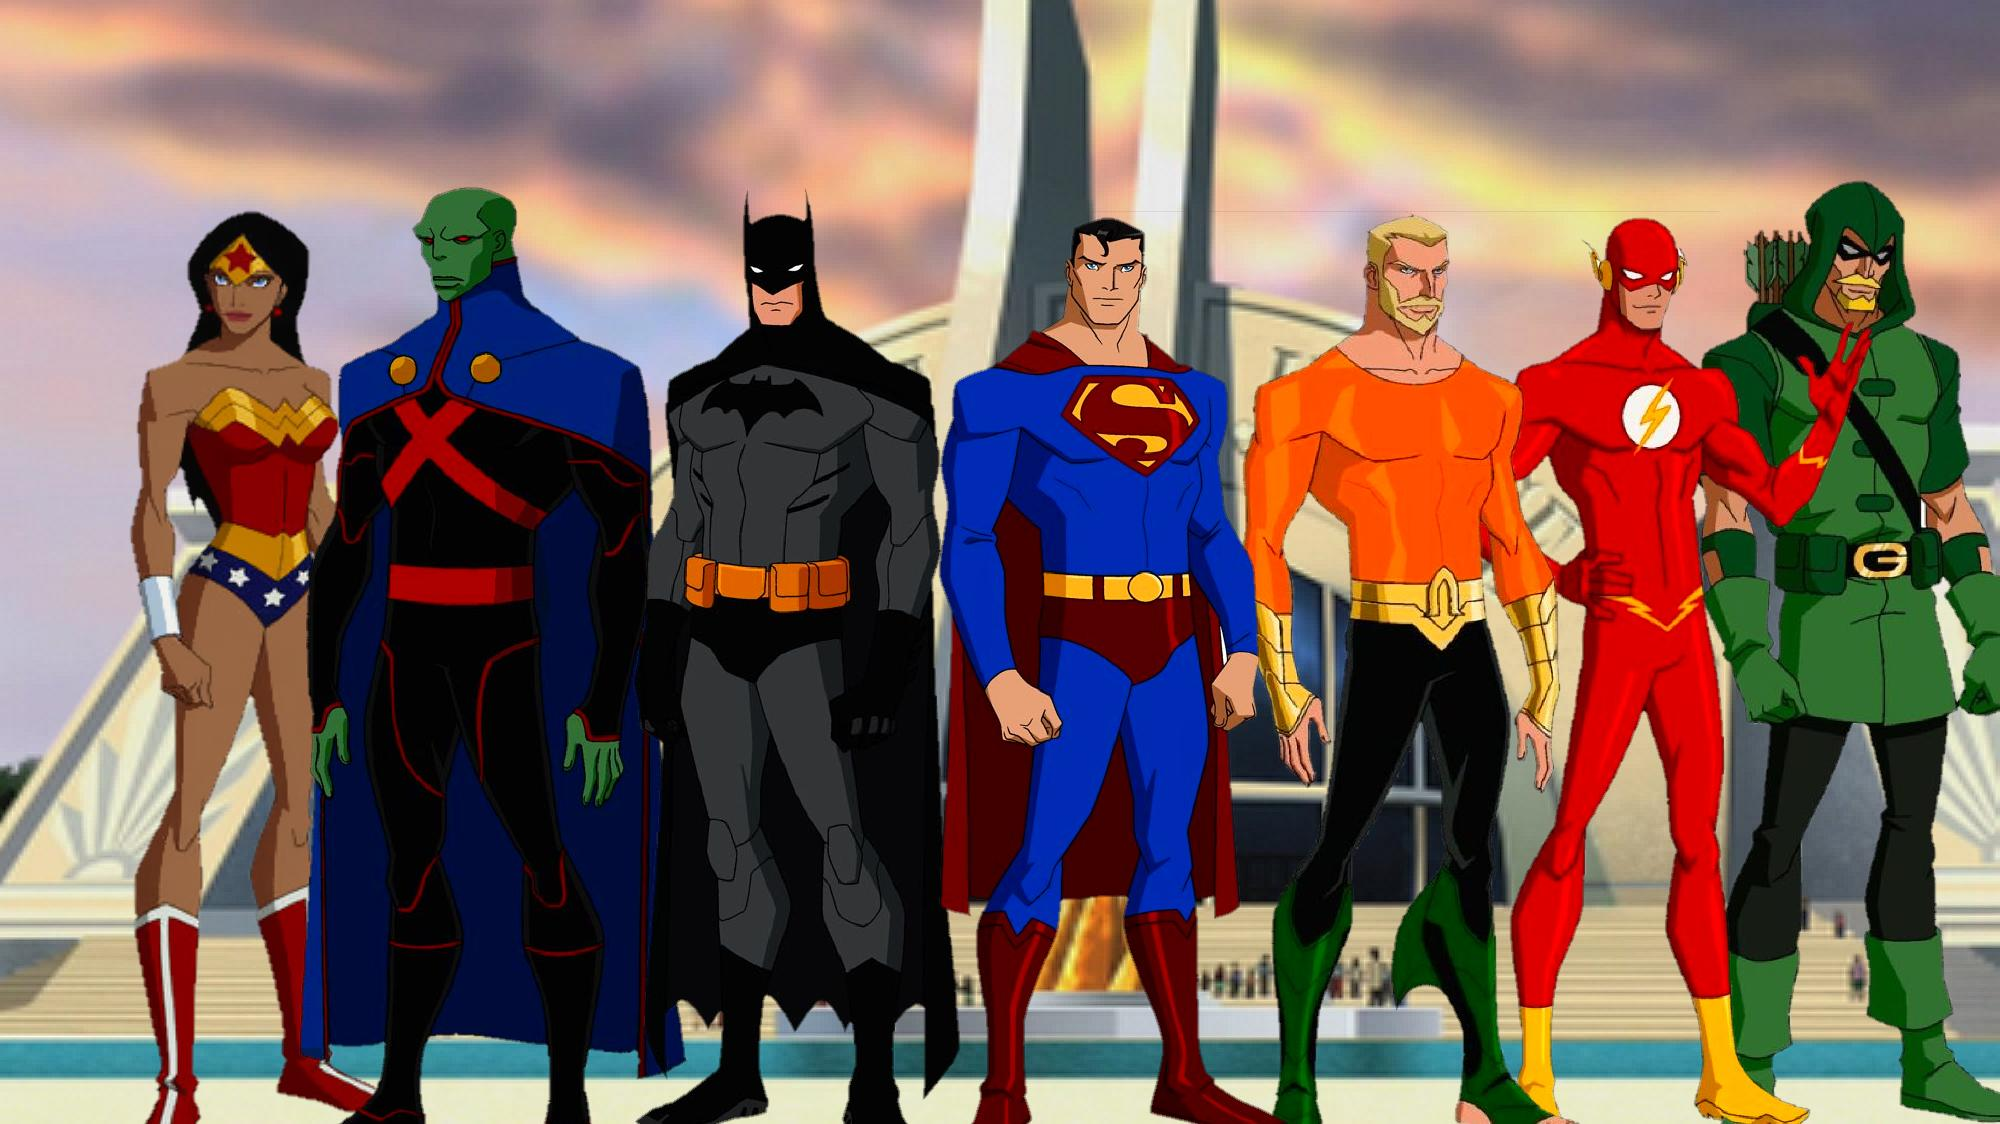 http://vignette2.wikia.nocookie.net/justiciajoven/images/a/aa/Justice_league_Young_Justice.jpg/revision/latest?cb=20130104024846&path-prefix=es